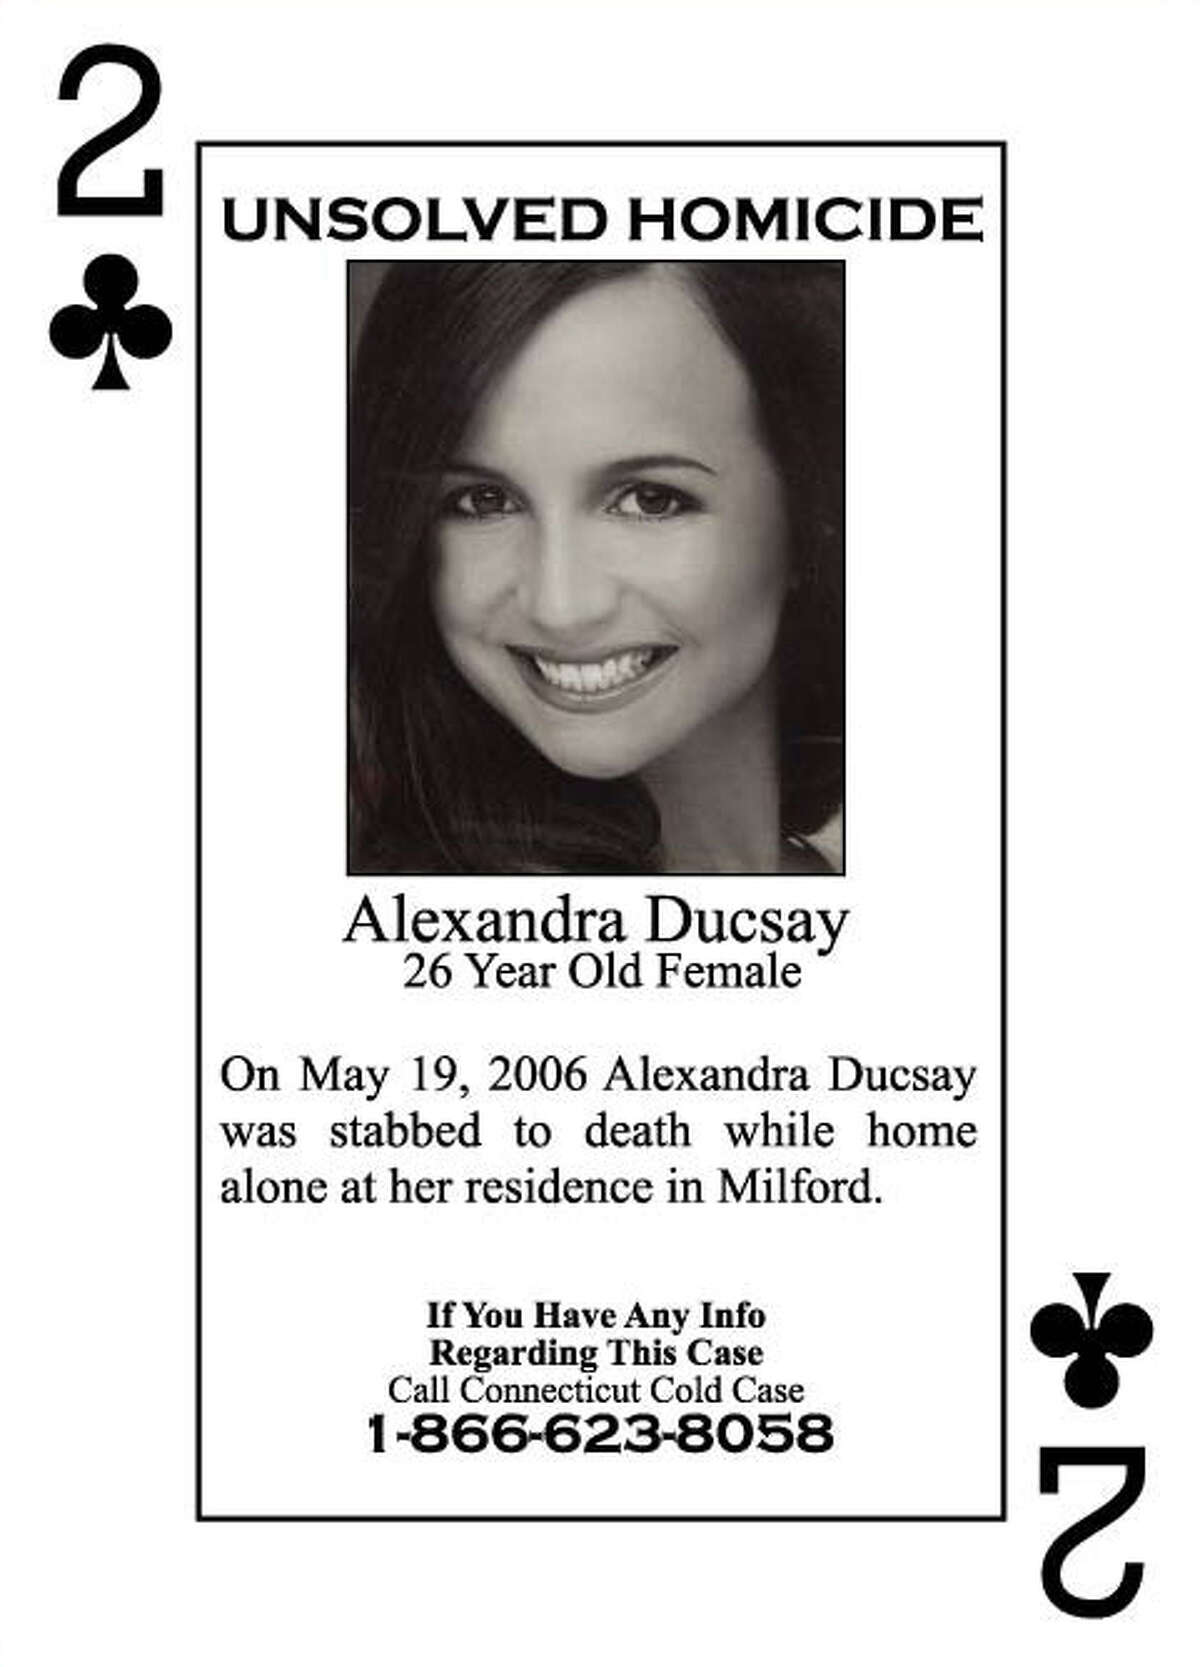 Alexandra Ducsay's photo is on the two of clubs, in a deck of playing cards depicting victims of unsolved murders. The cards are distributed to inmates in the state's prisons in the hope that they will generate tips or leads. Ducsay was murdered in her Devon home five years ago